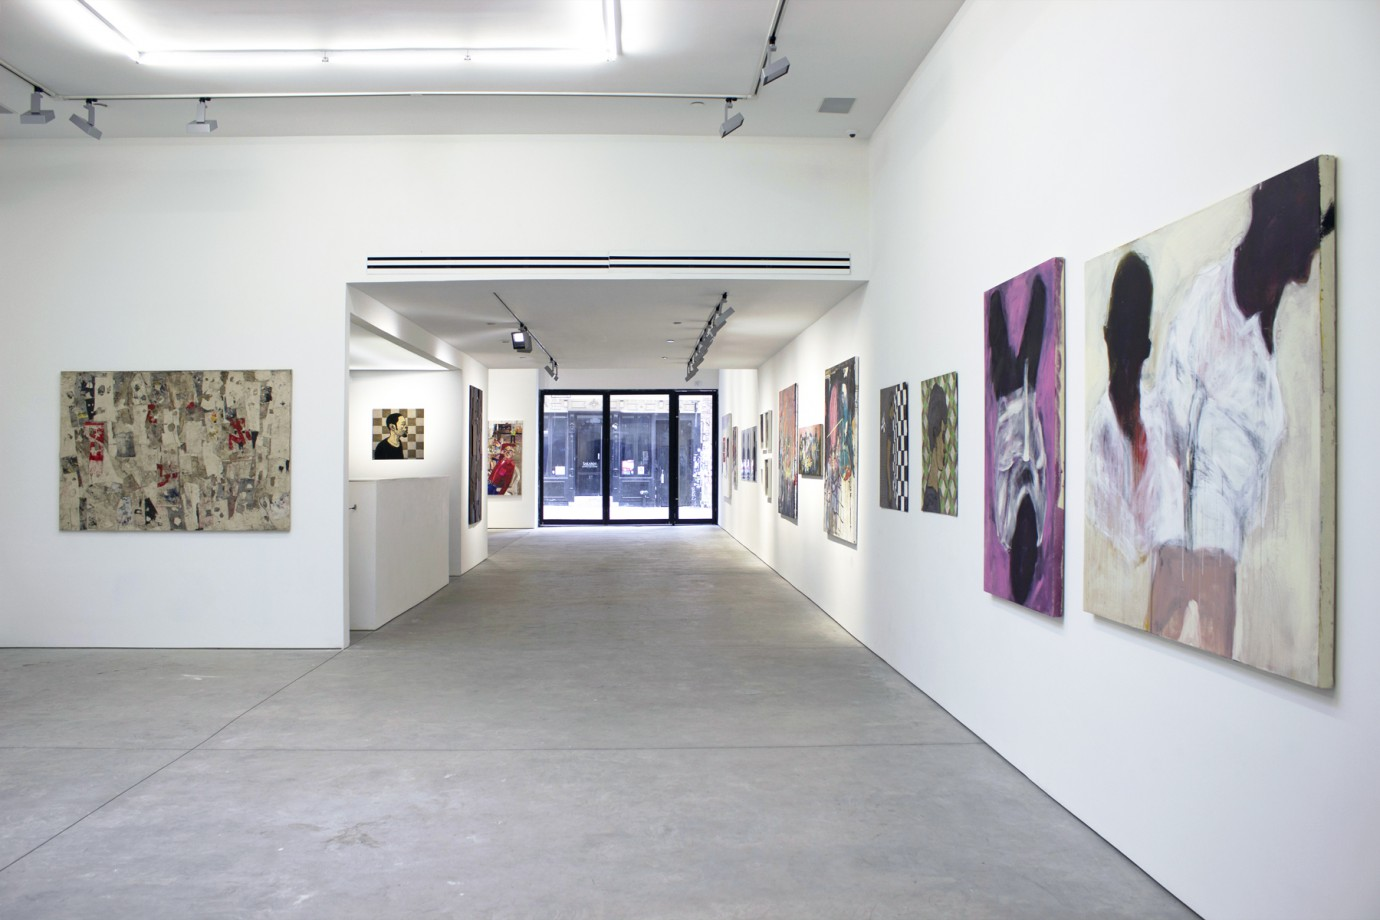 201507_Gallery-BK_GWCD_exhibit view_99